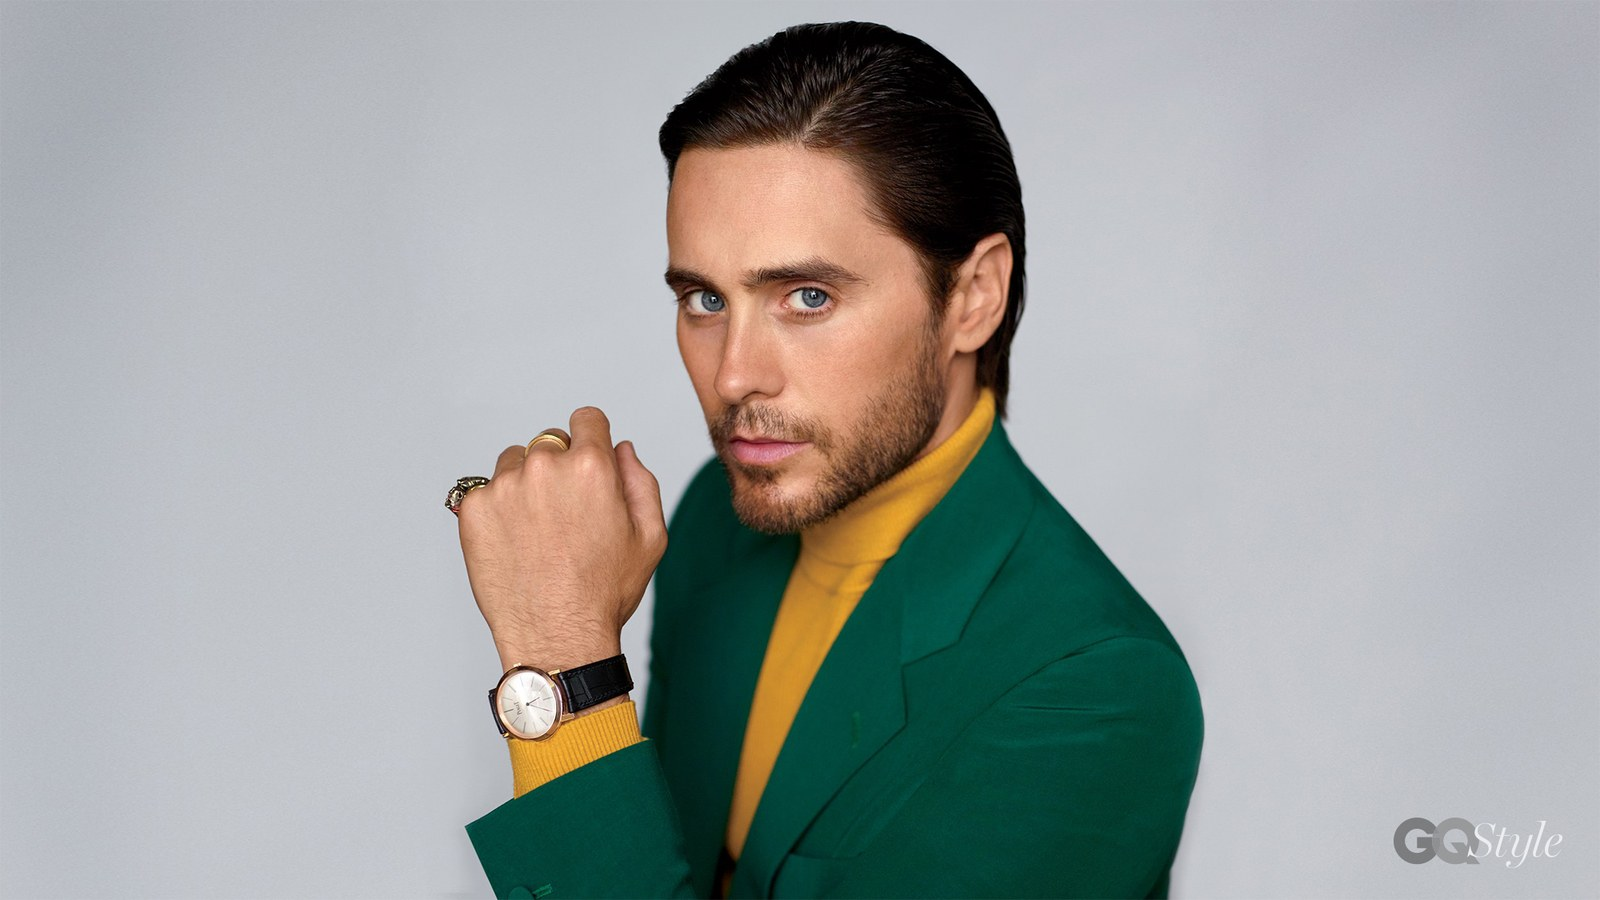 Spotted: Jared Leto in Gucci for GQ Style